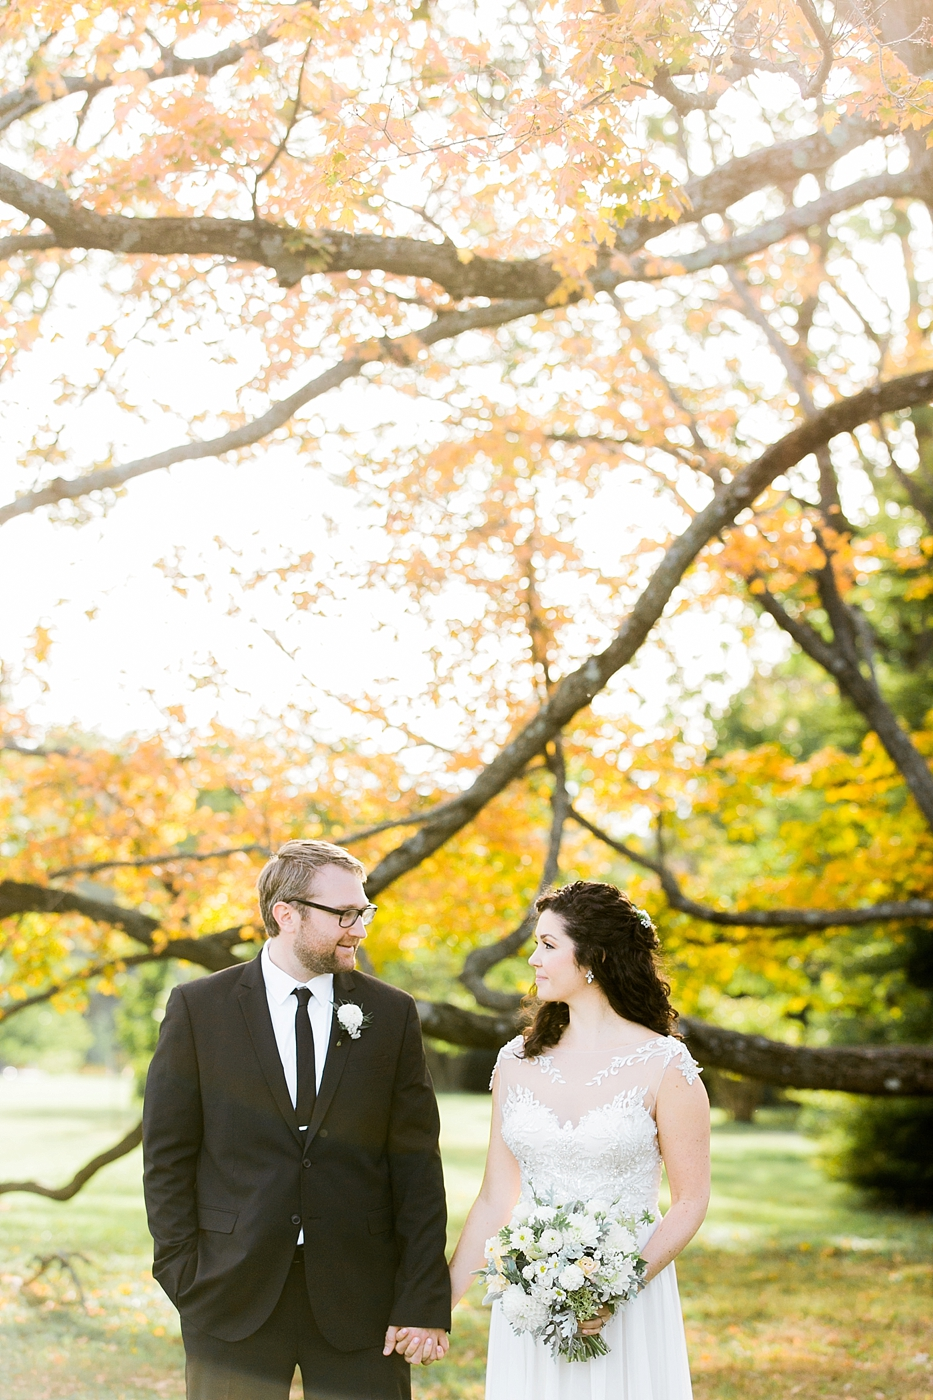 1003-seattle-wedding-photographers-kirsten-marie-photography